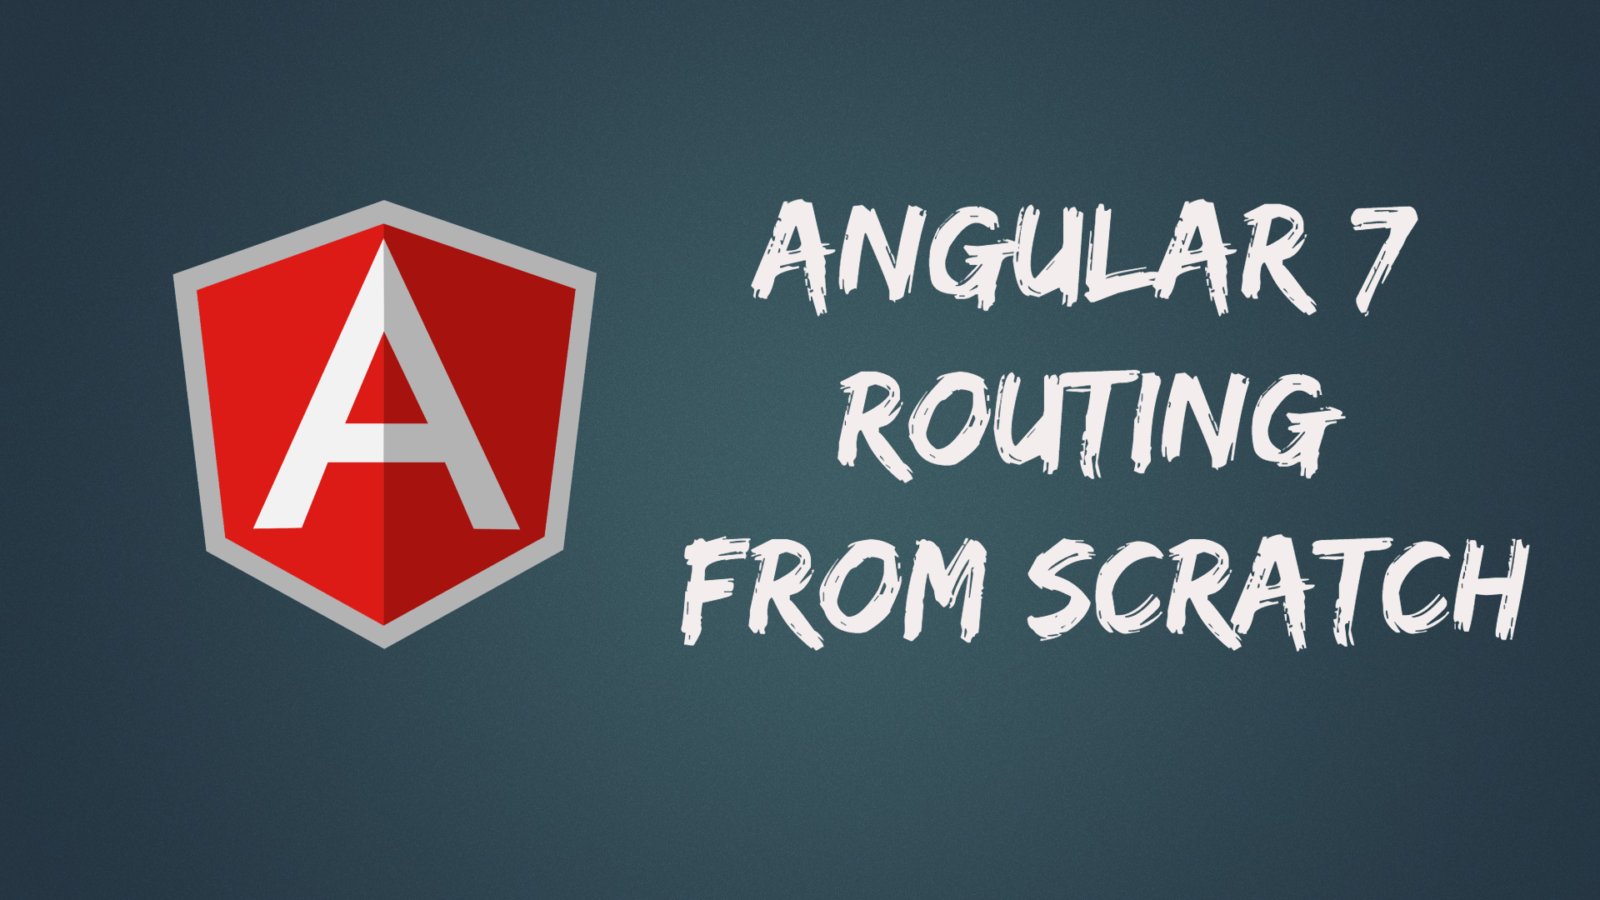 Angular 7 Tutorial for Routing With Example